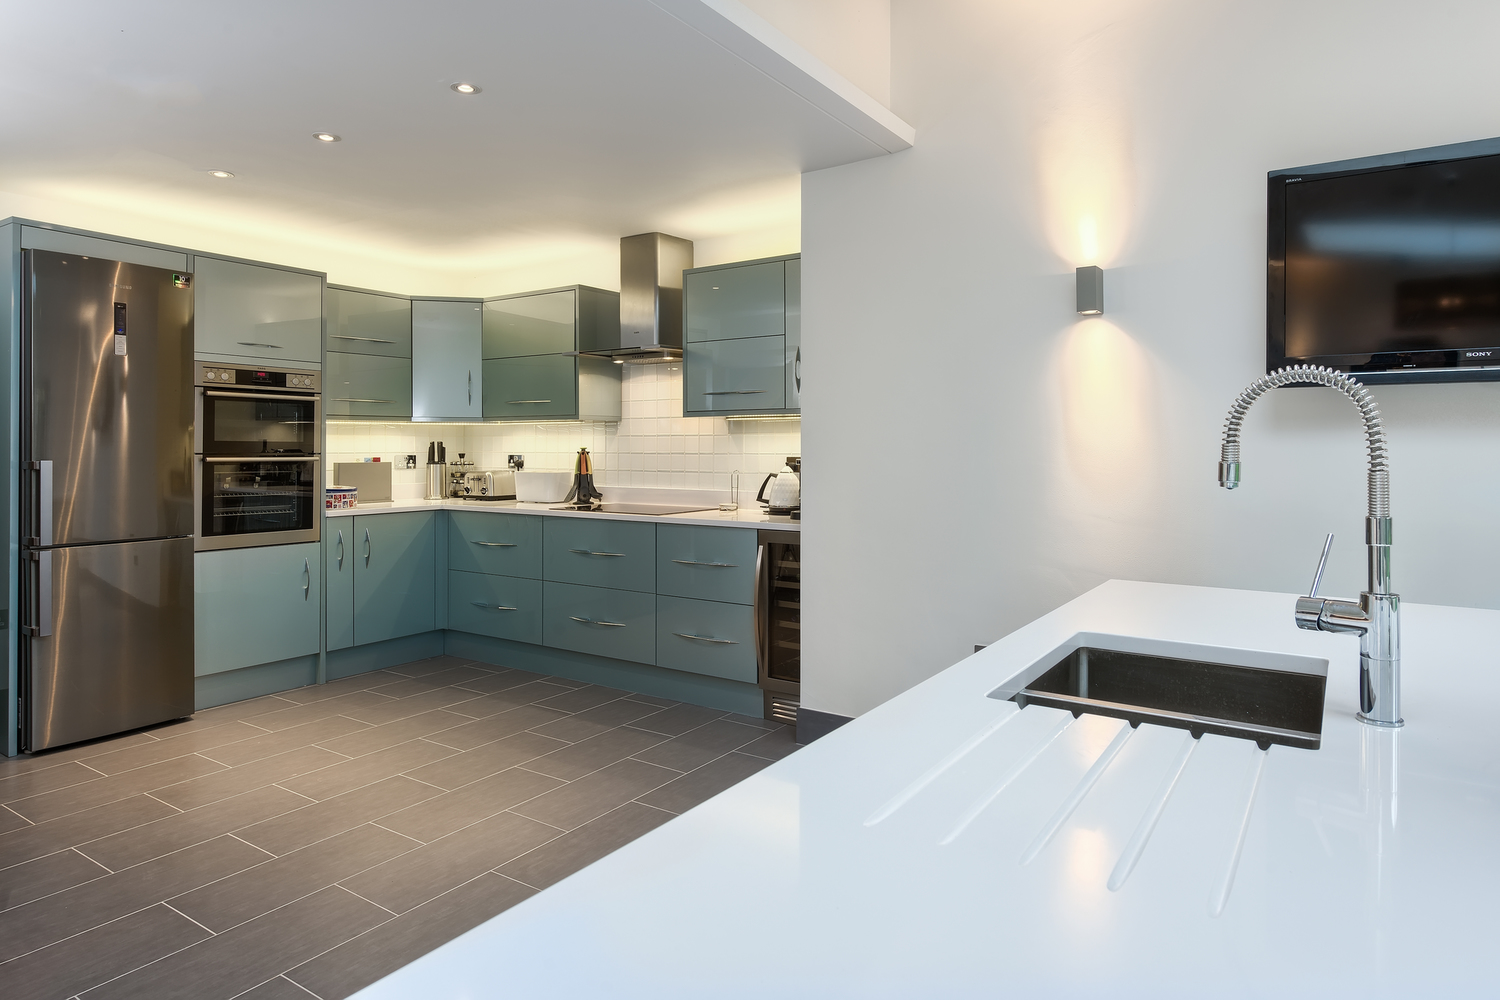 Kitchen sink of a lighting house extension by Harvey Norman Architects Cambridge